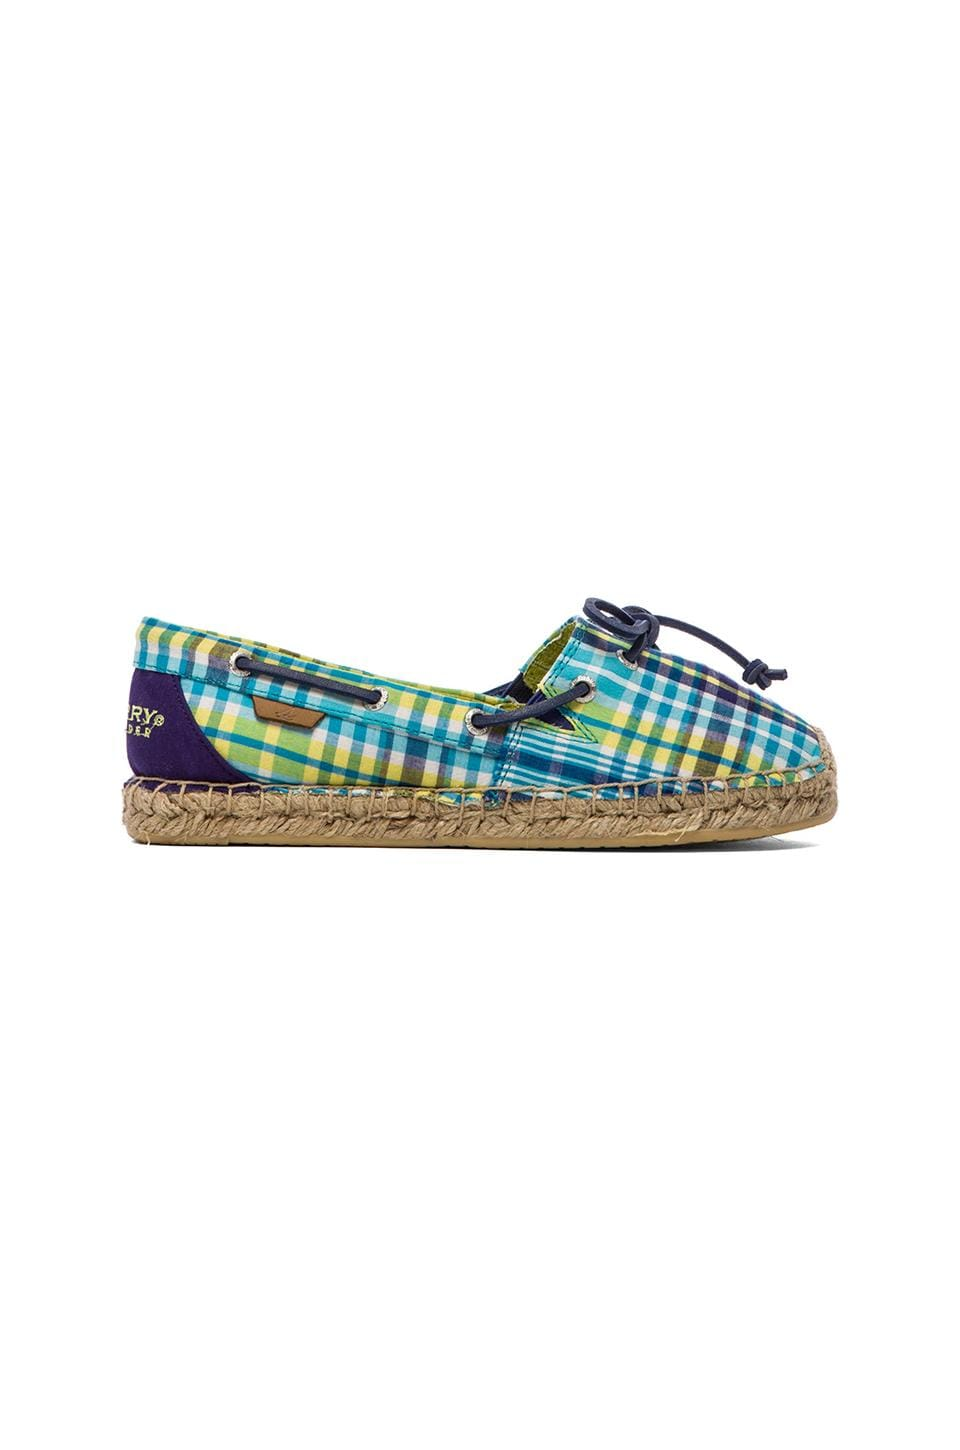 Sperry Top-Sider Katama in Blue Plaid